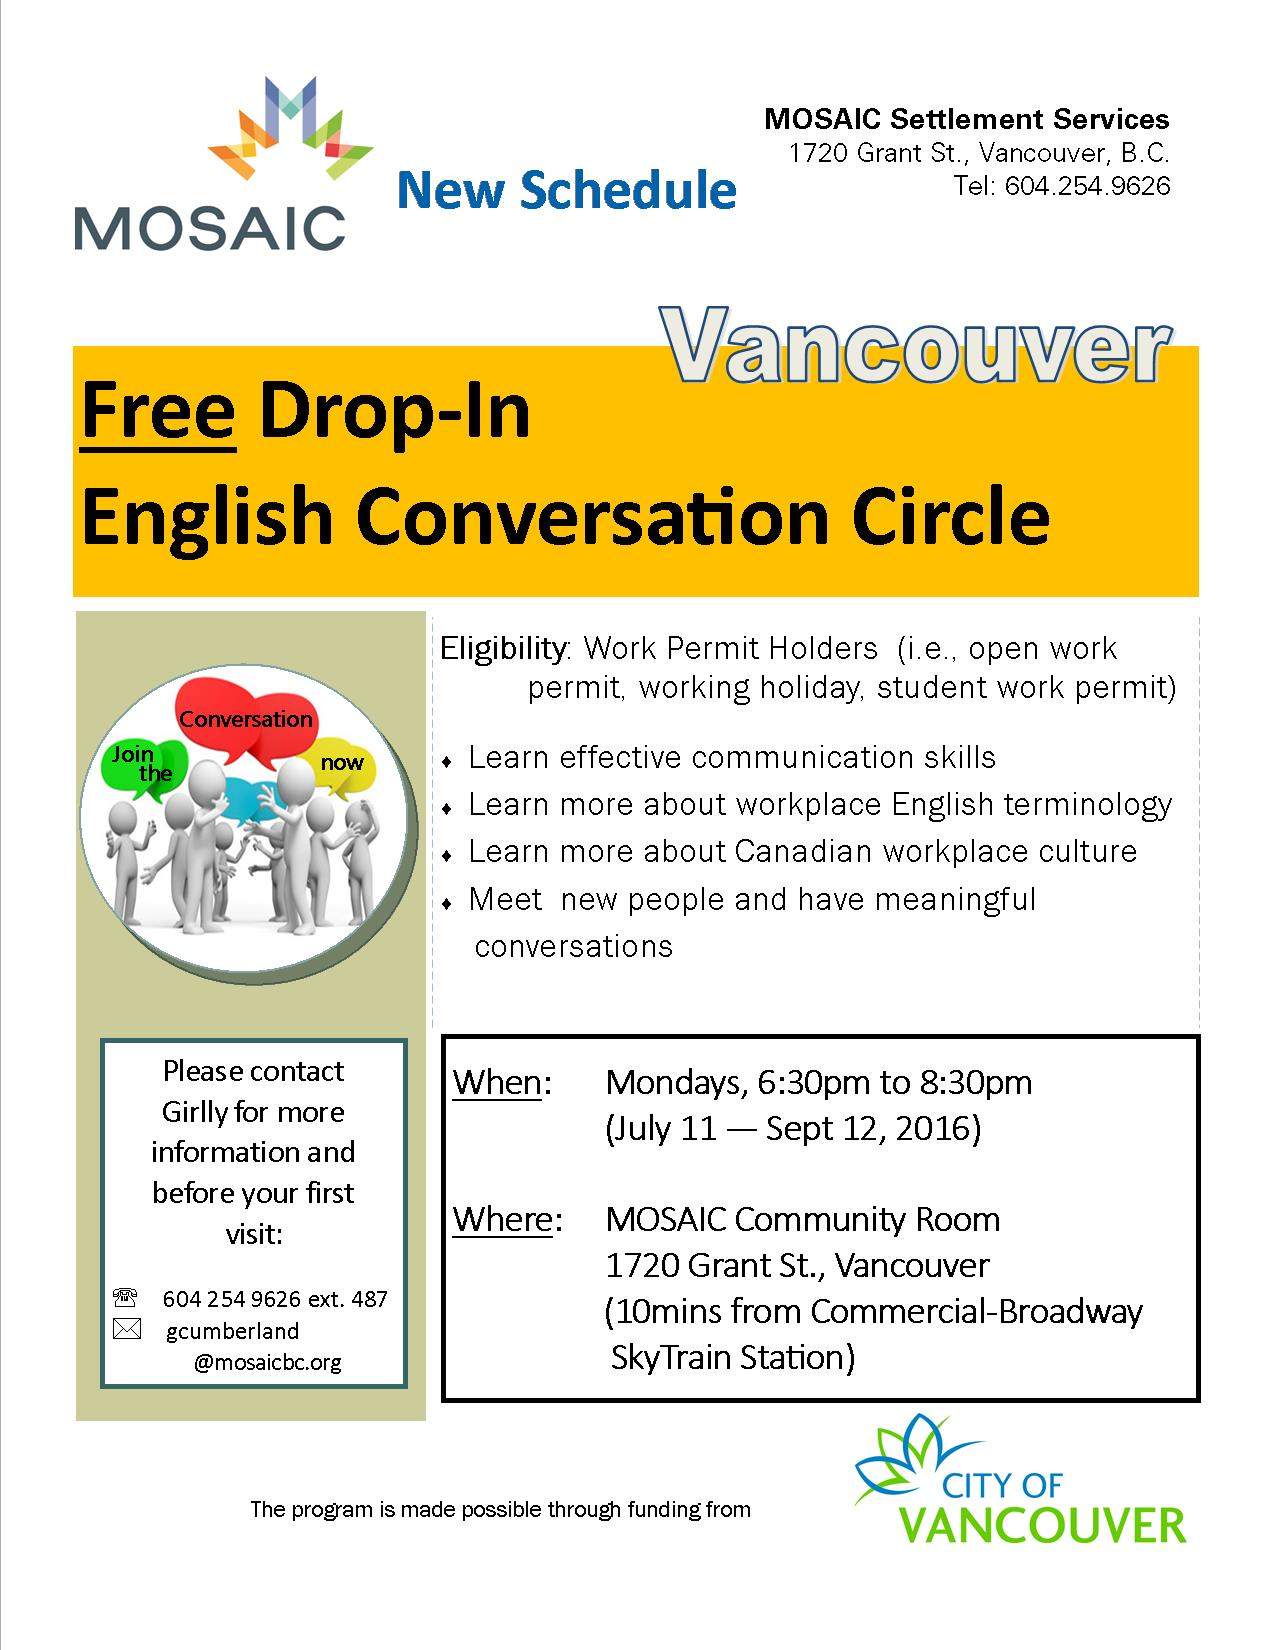 Drop-in English Conversation Circle